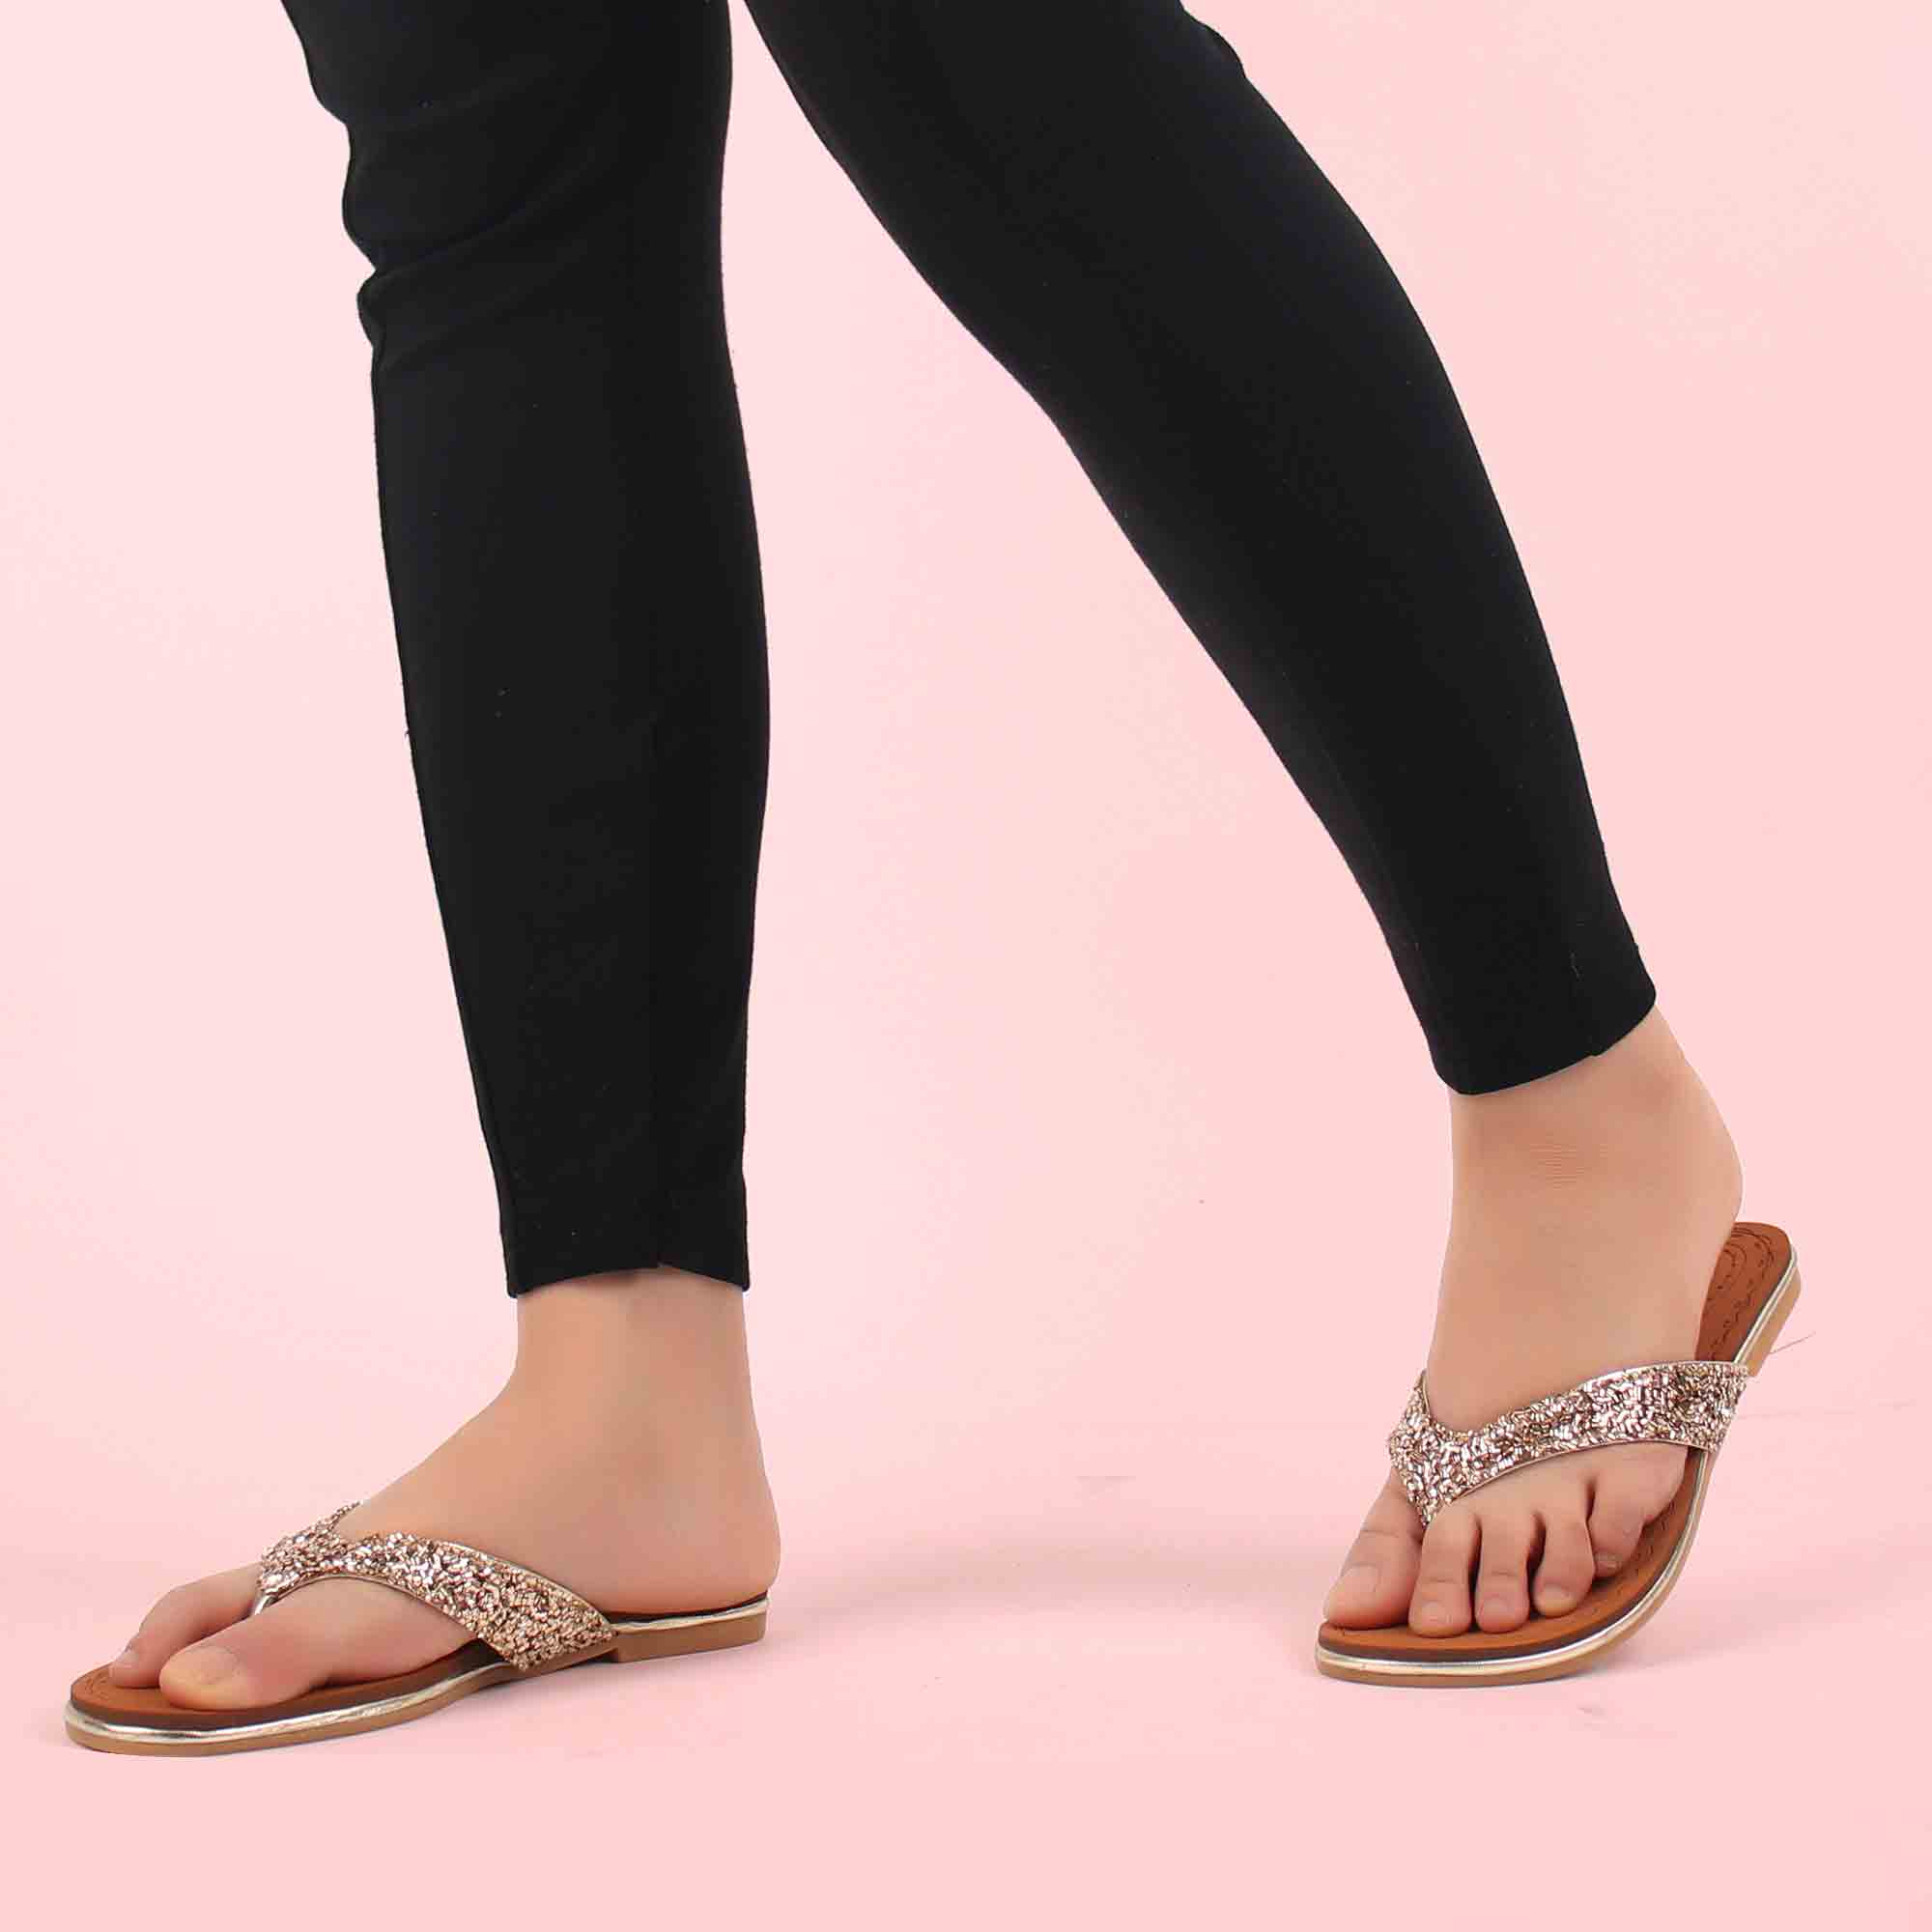 Foot Wear,The scintillating shimmer Comfortable Flats - Cippele Multi Store